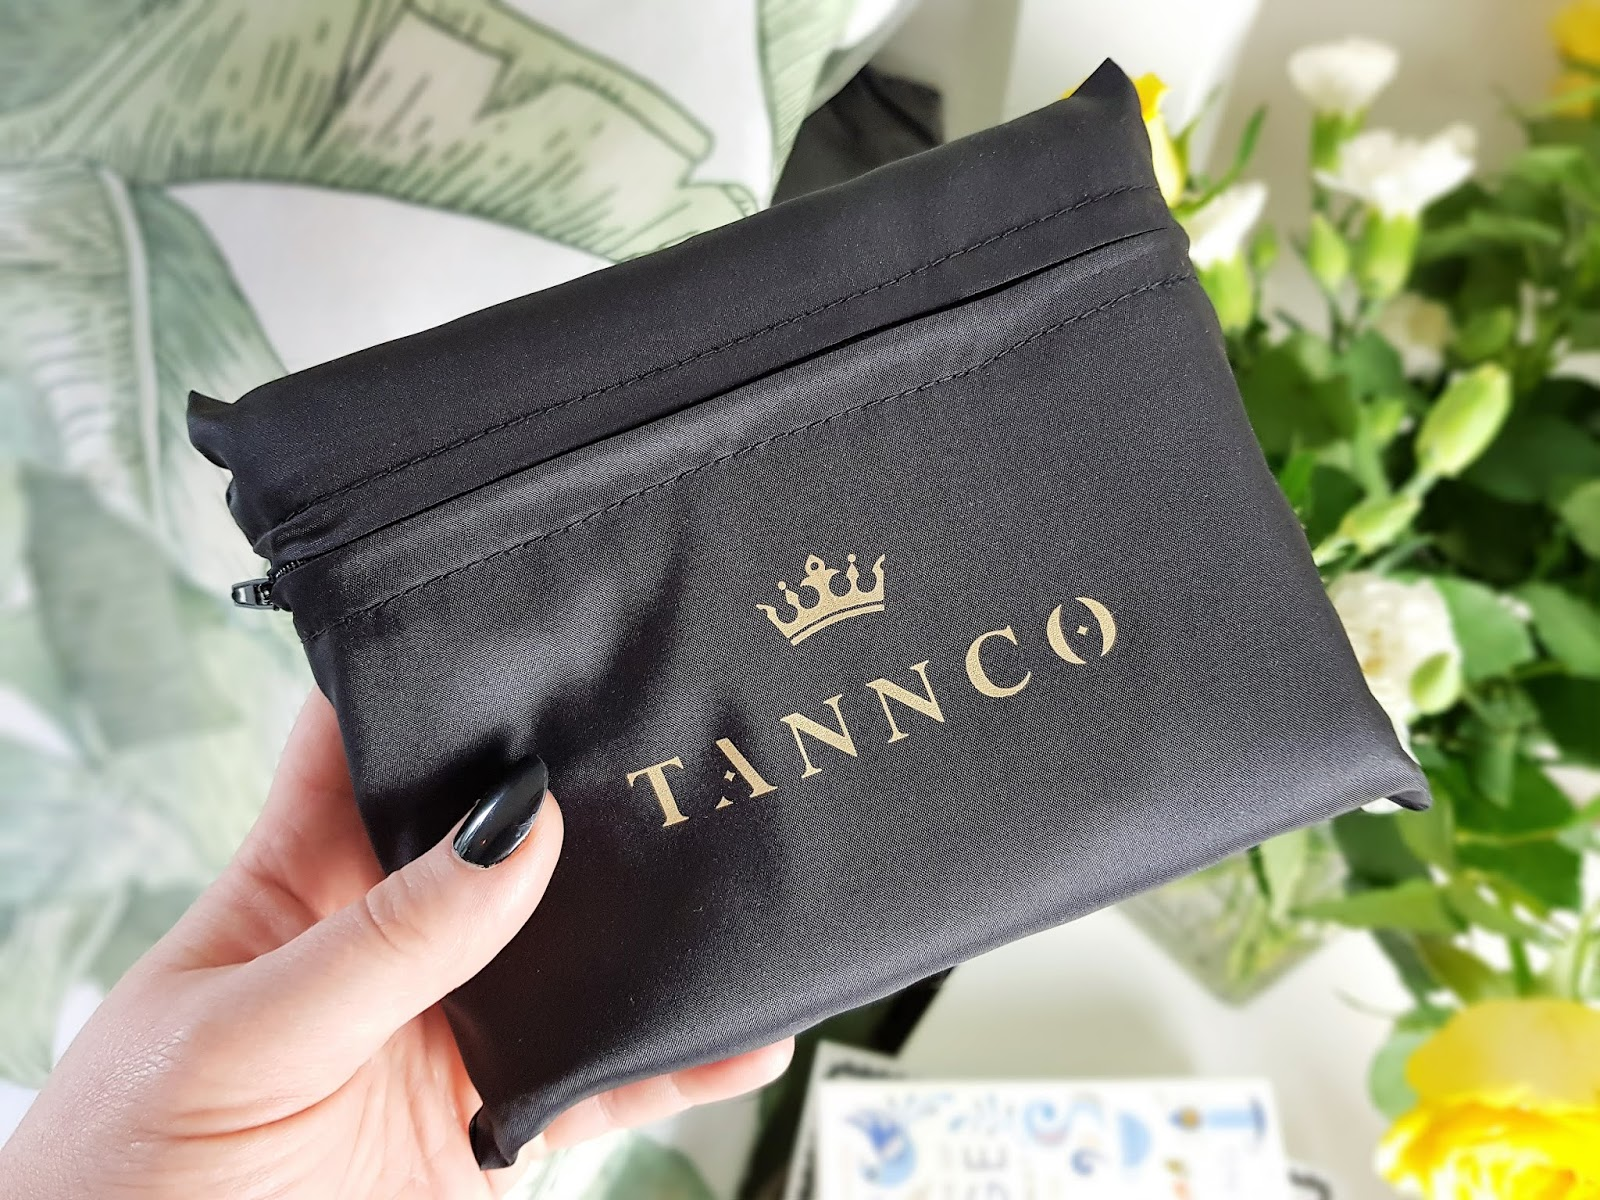 Tannco Black Tan Protector Sheet